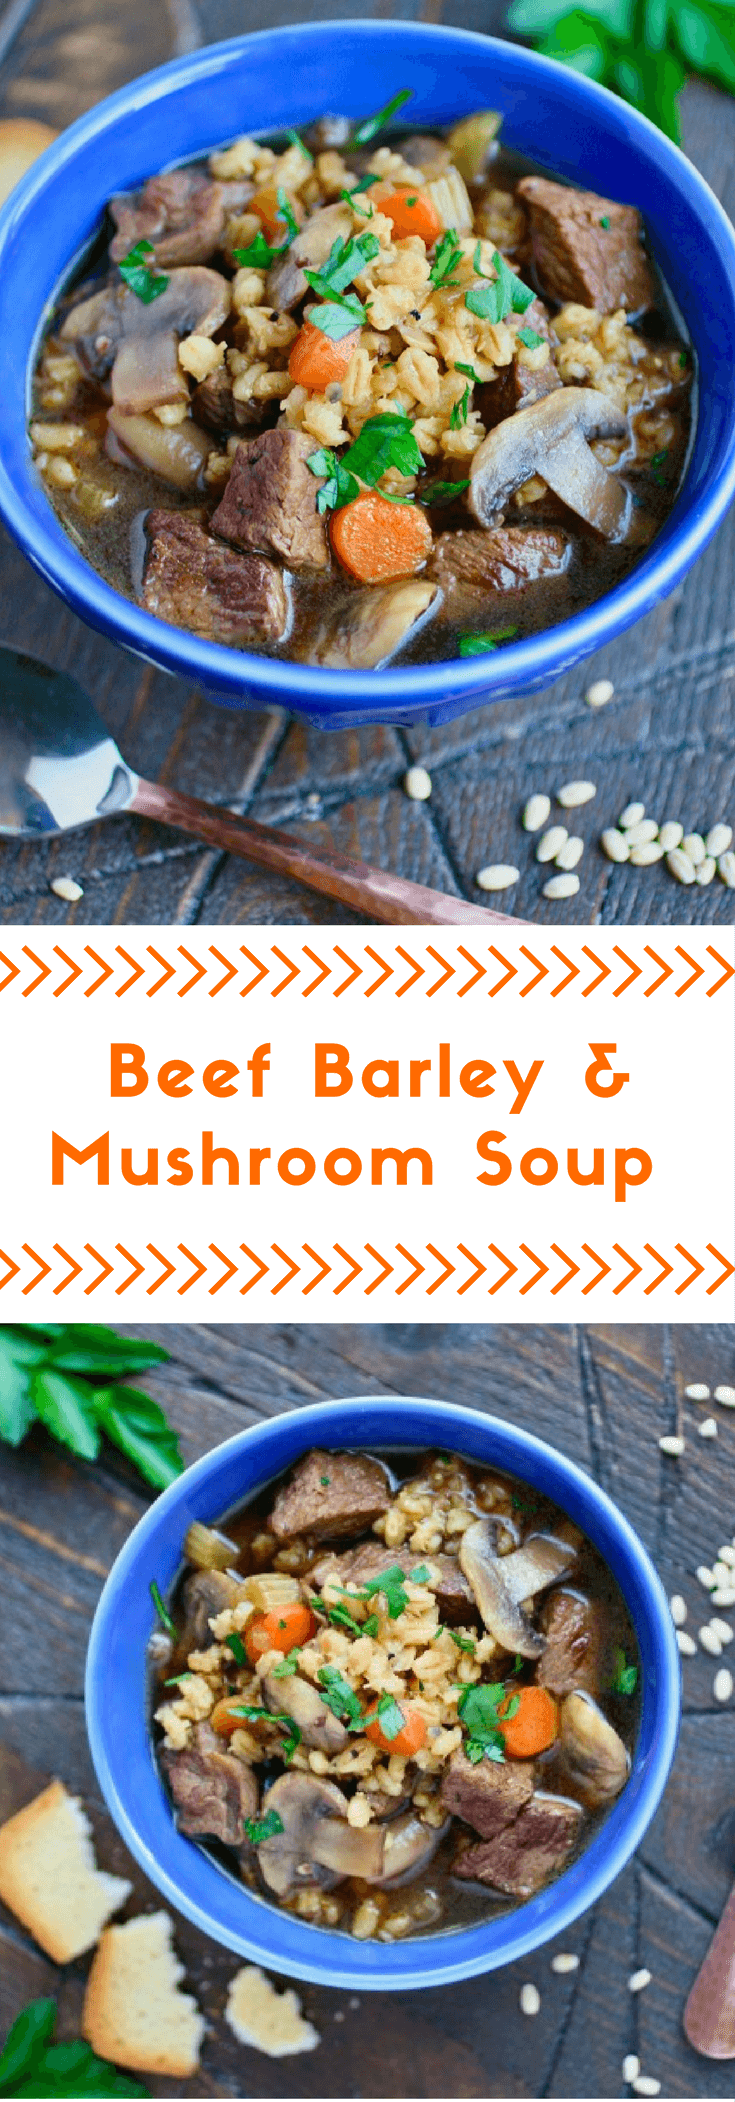 Make a batch of Beef Barley and Mushroom Soup to keep you satisfied!